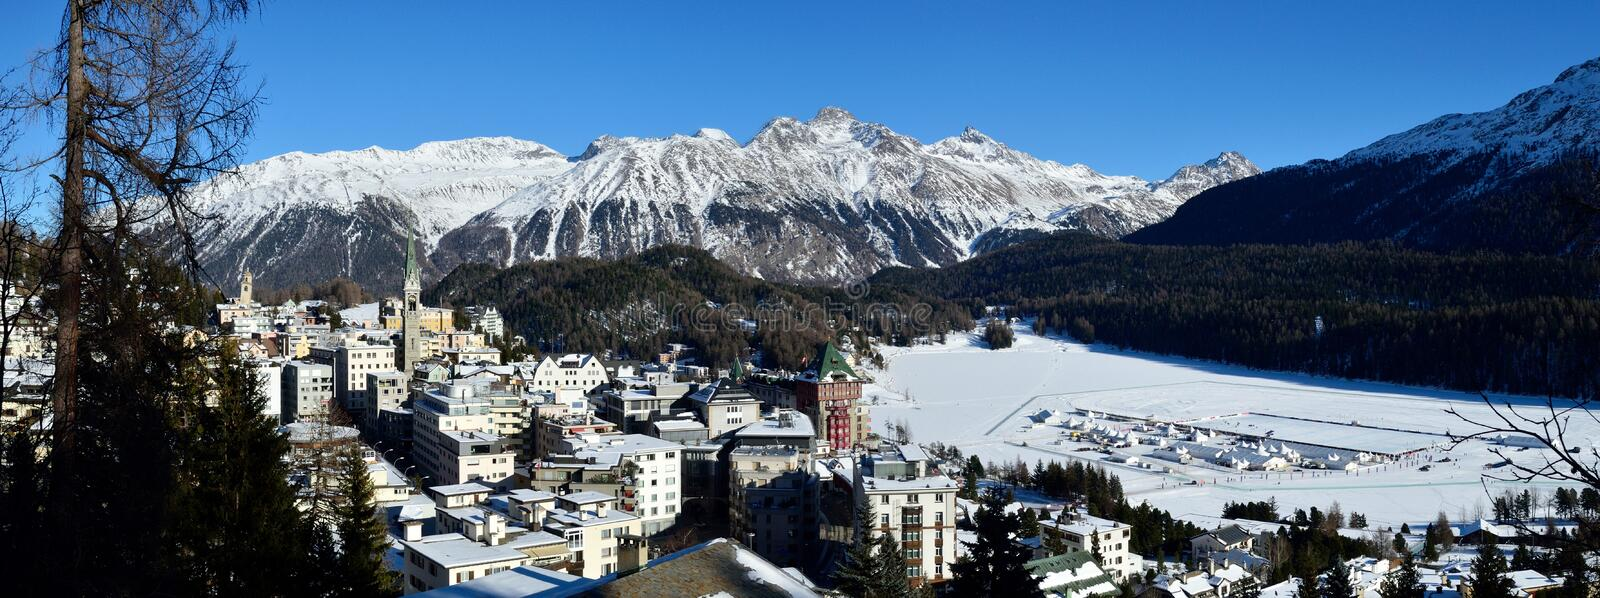 Sankt Moritz. Winter alpine scenery around famous resort Sankt Moritz - Switzerland stock image